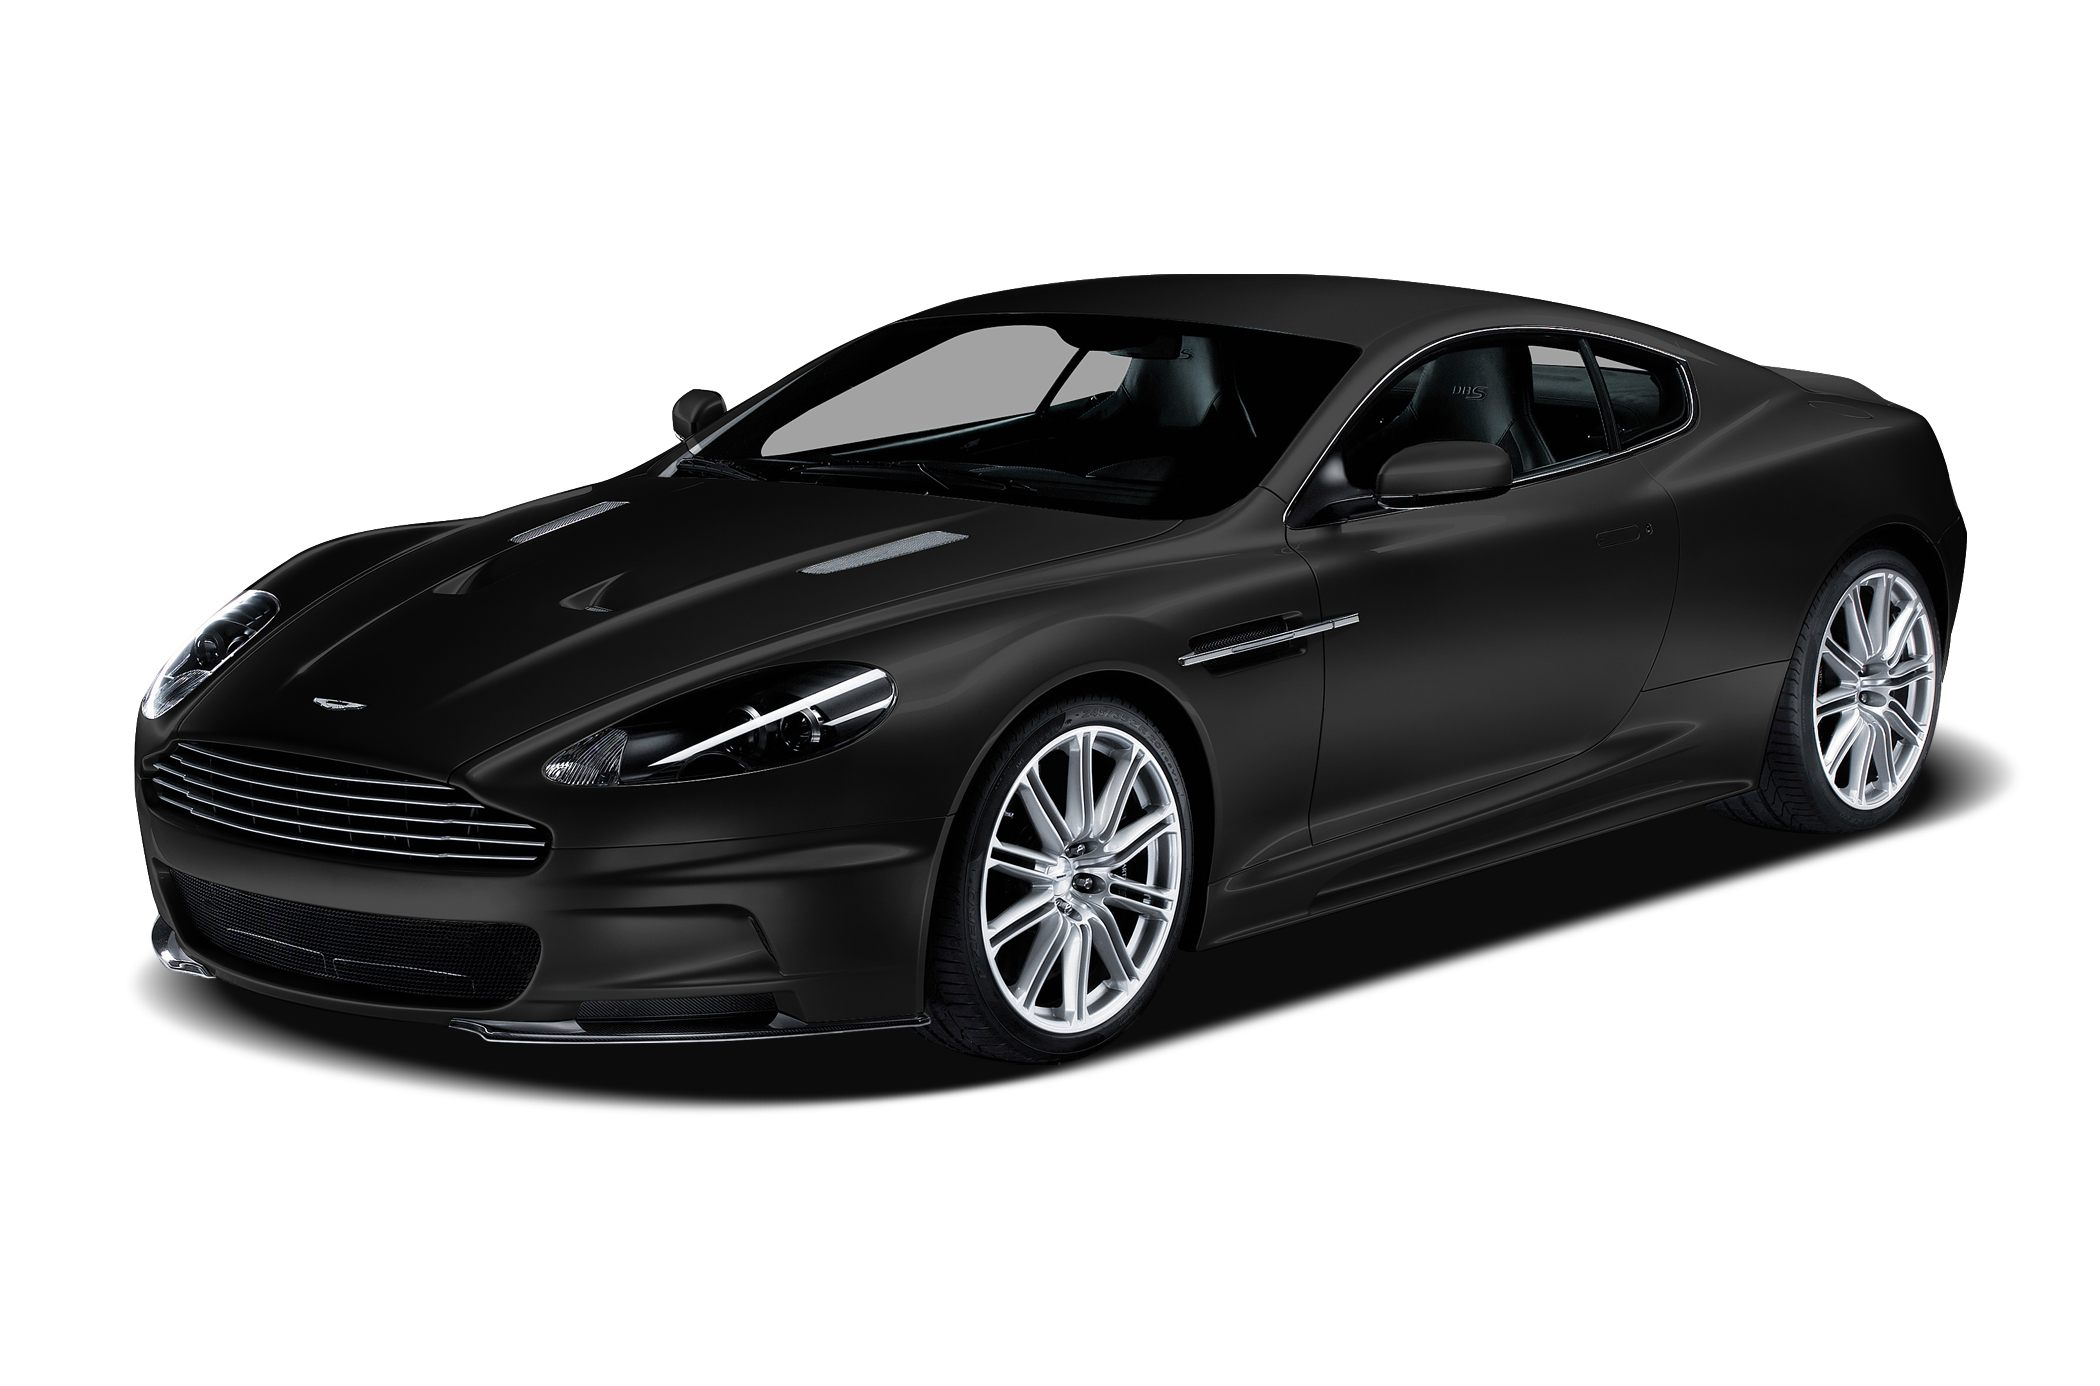 2009 Aston Martin DBS